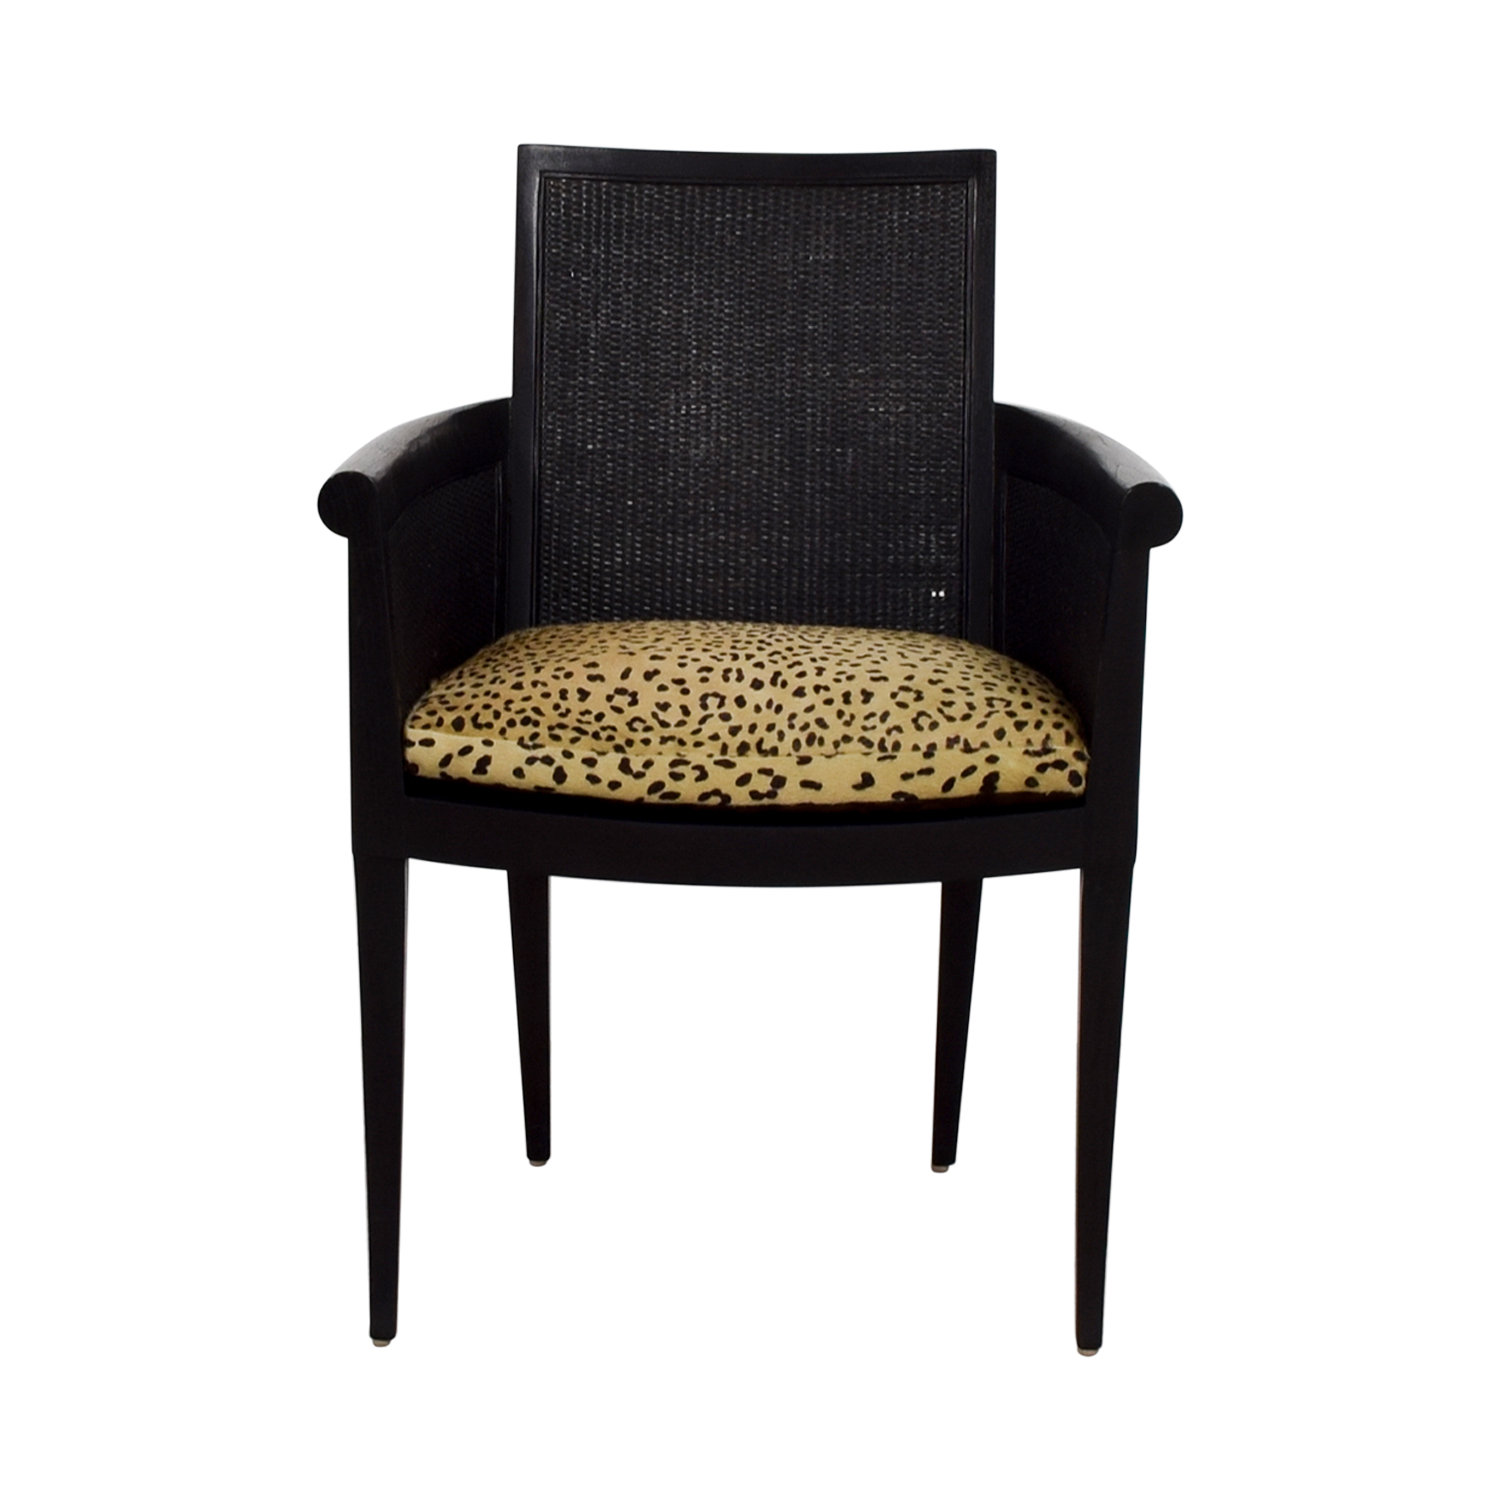 shop Sutherland Sutherland Cane Armchair with Pony Skin Leopard Cushion online